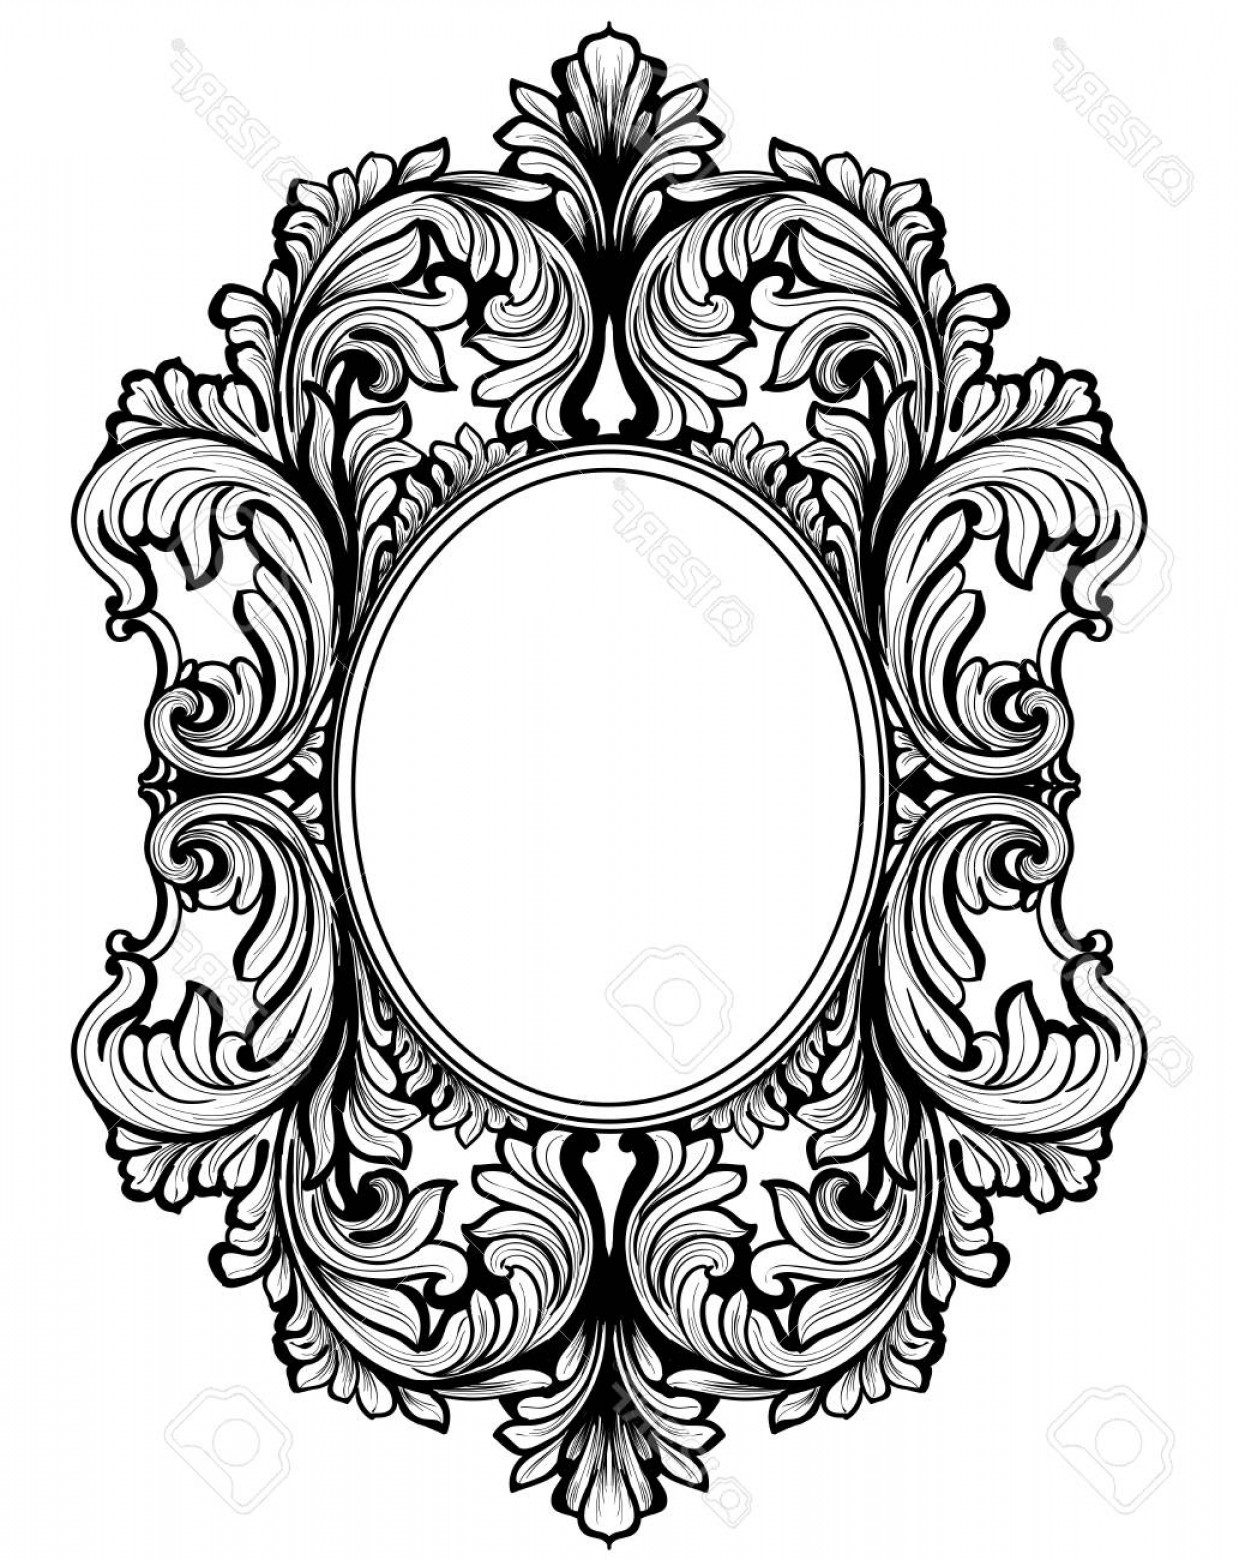 Baroque Vector Clip Art: Photostock Vector Vintage Baroque Frame Decor Detailed Ornament Vector Illustration Graphic Line Art